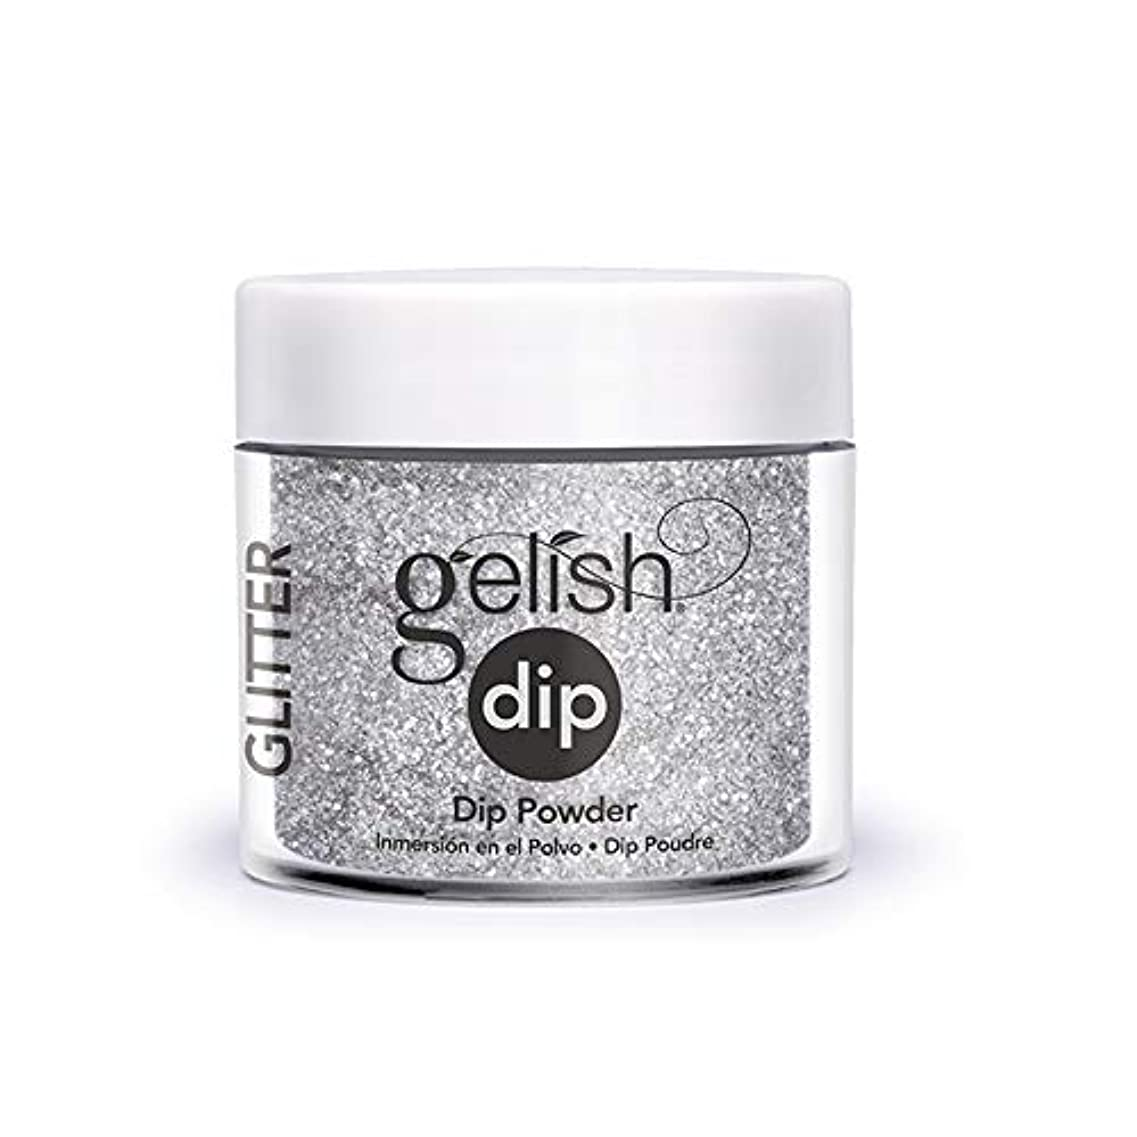 スナッチ混乱させるペチュランスHarmony Gelish - Acrylic Dip Powder - Time to Shine - 23g / 0.8oz